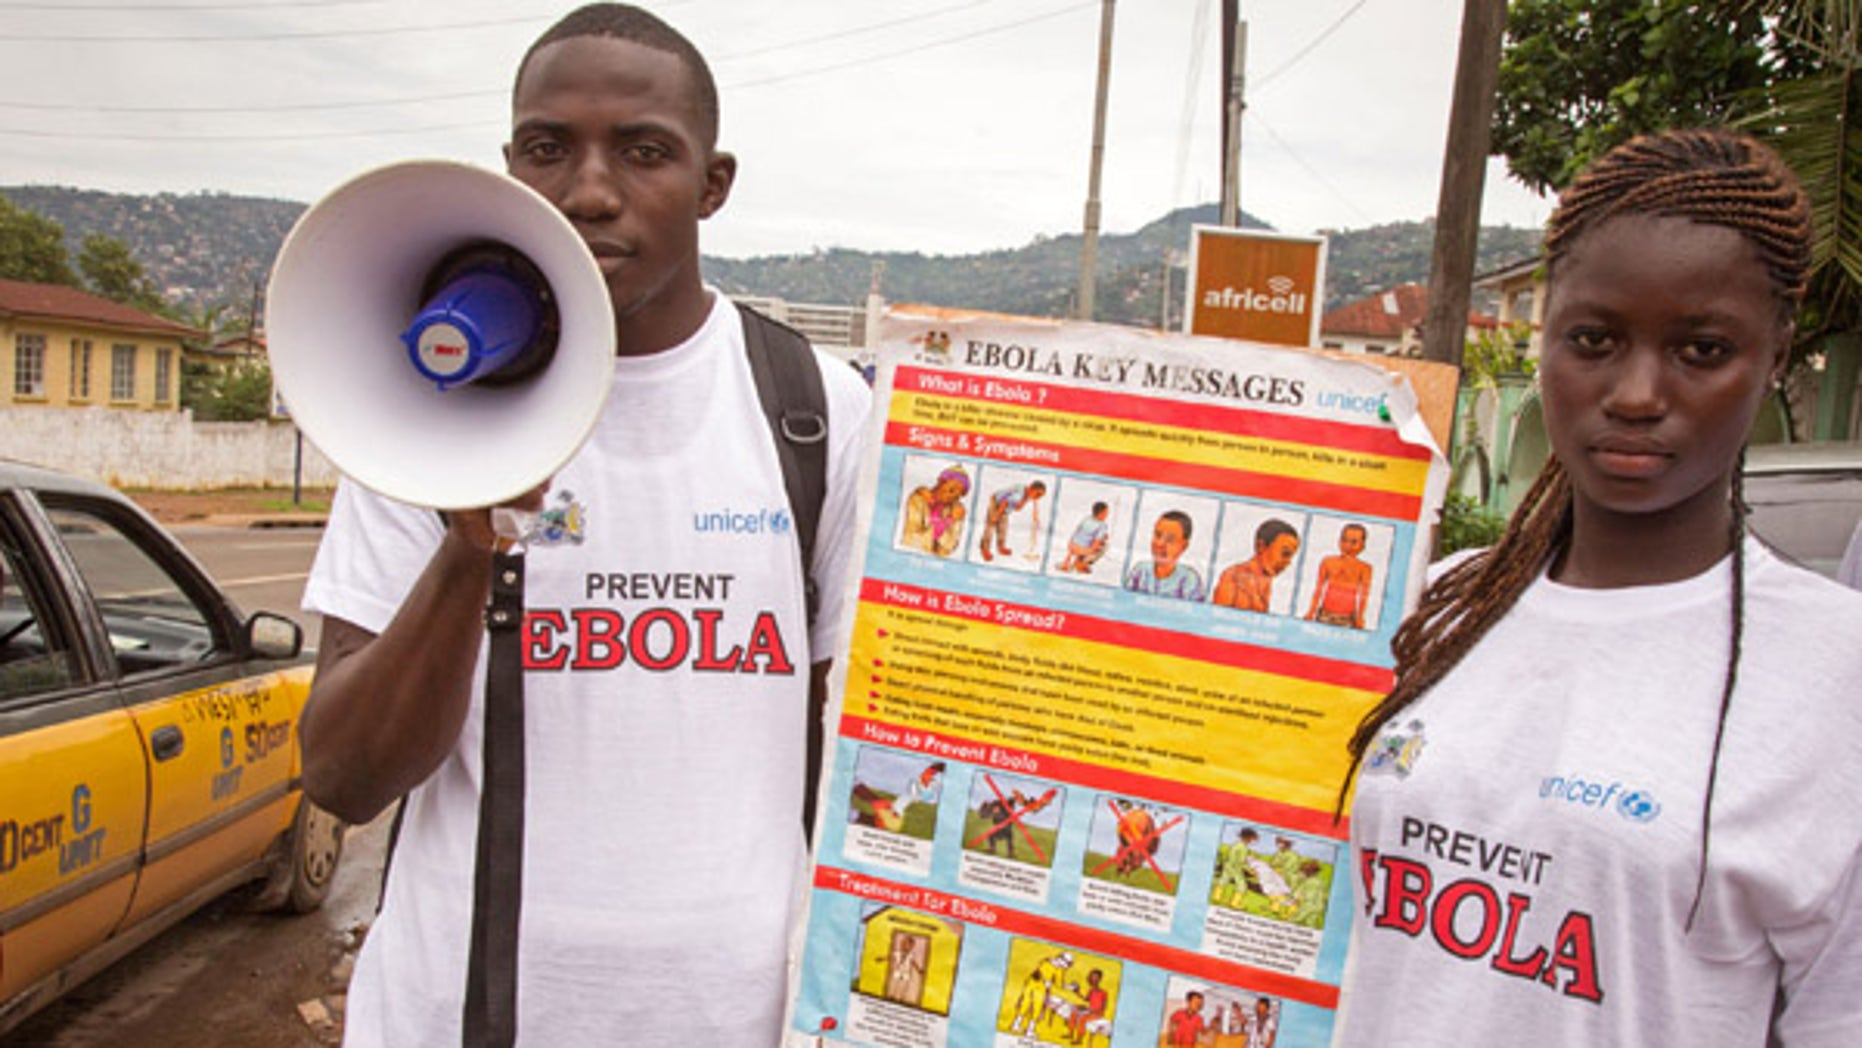 Aug. 6, 2014: A man and woman taking part in a Ebola prevention campaign holds a placard with an Ebola prevention information message in the city of Freetown, Sierra Leone.